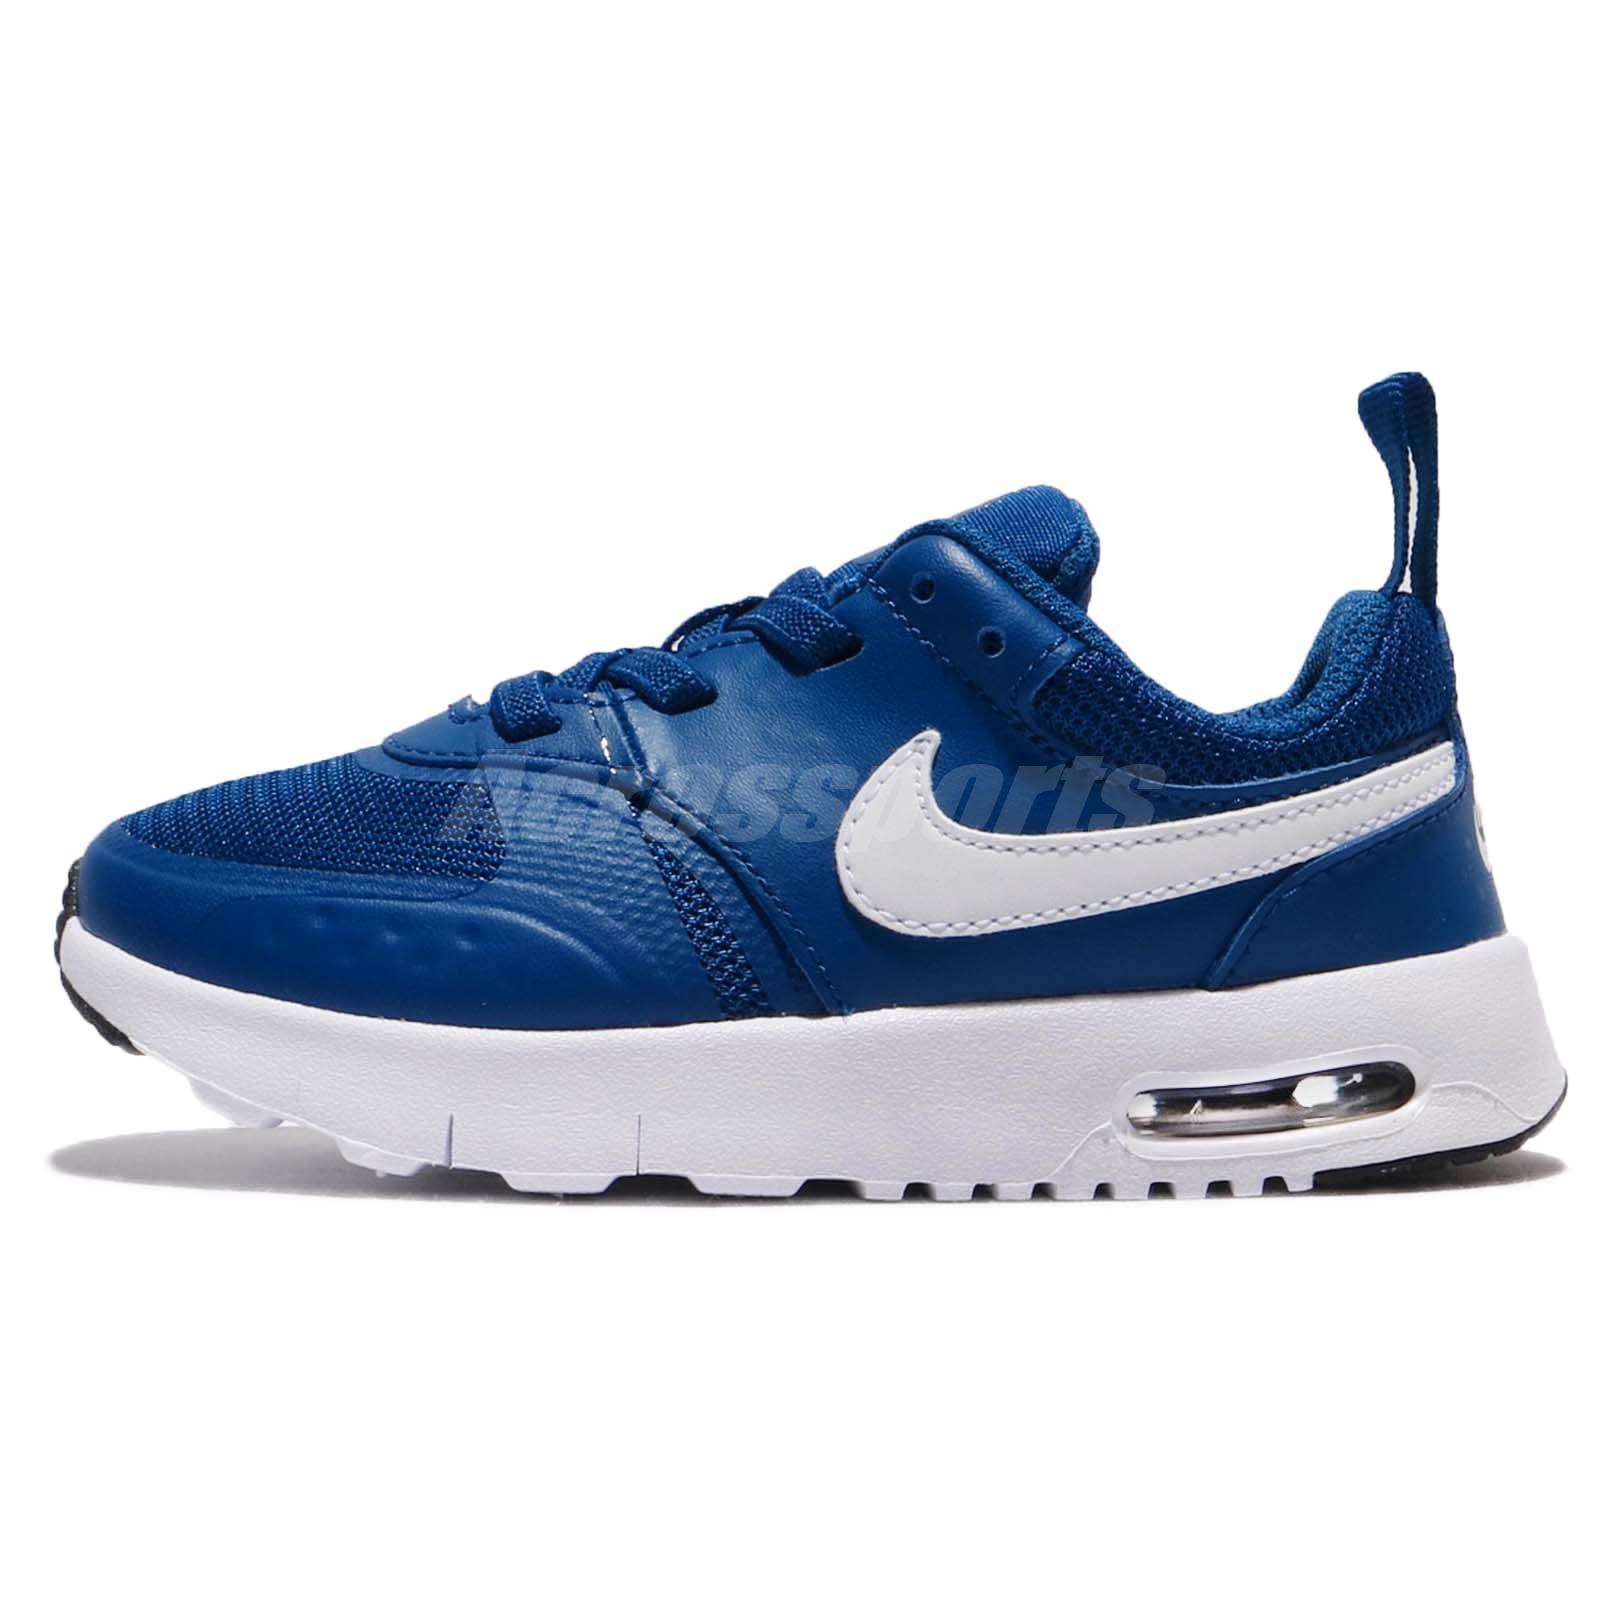 Nike Air Max Vision TDE Gym Blue White Toddler Infant Baby Shoes